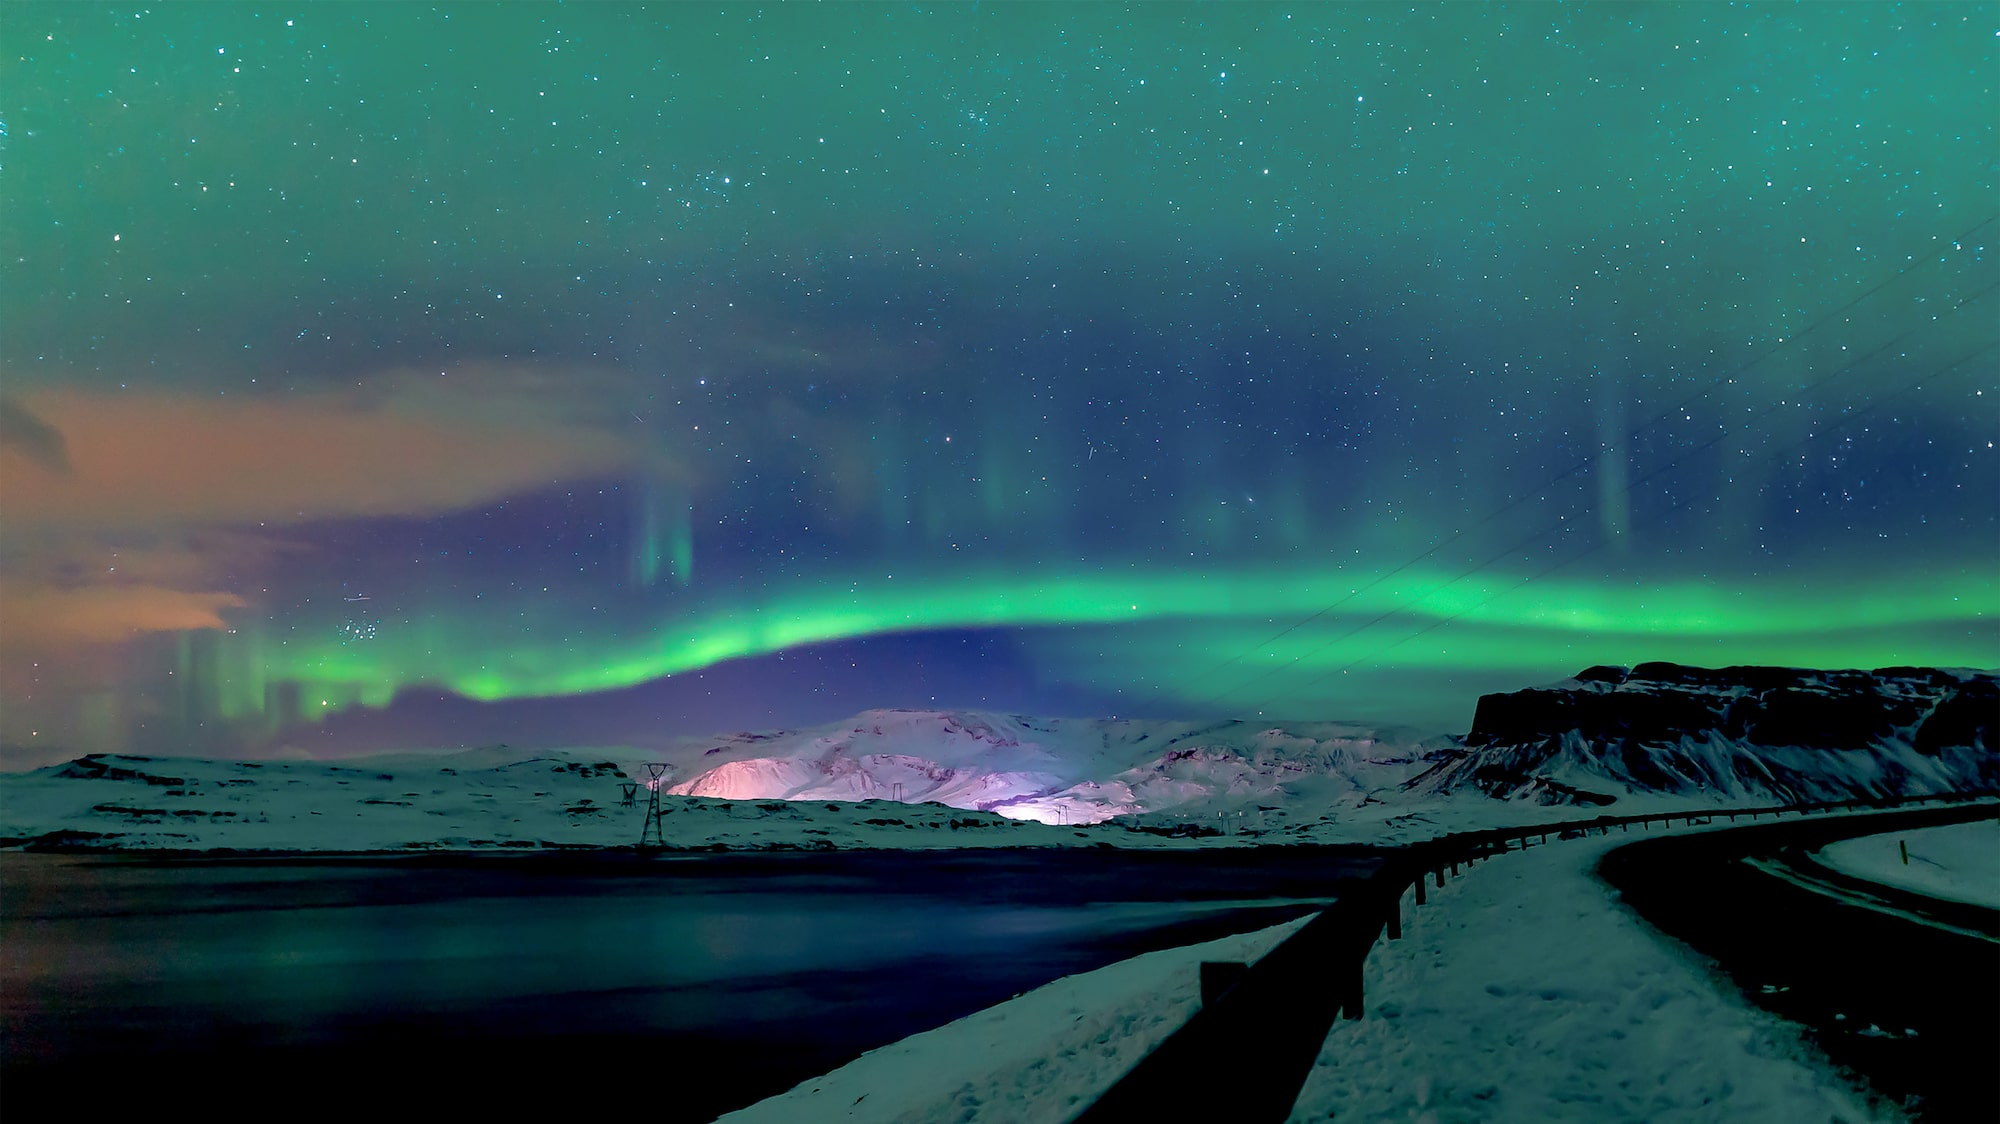 steve collins sony alpha 7SII dancing aurora display over distant mountains and snow covered roads